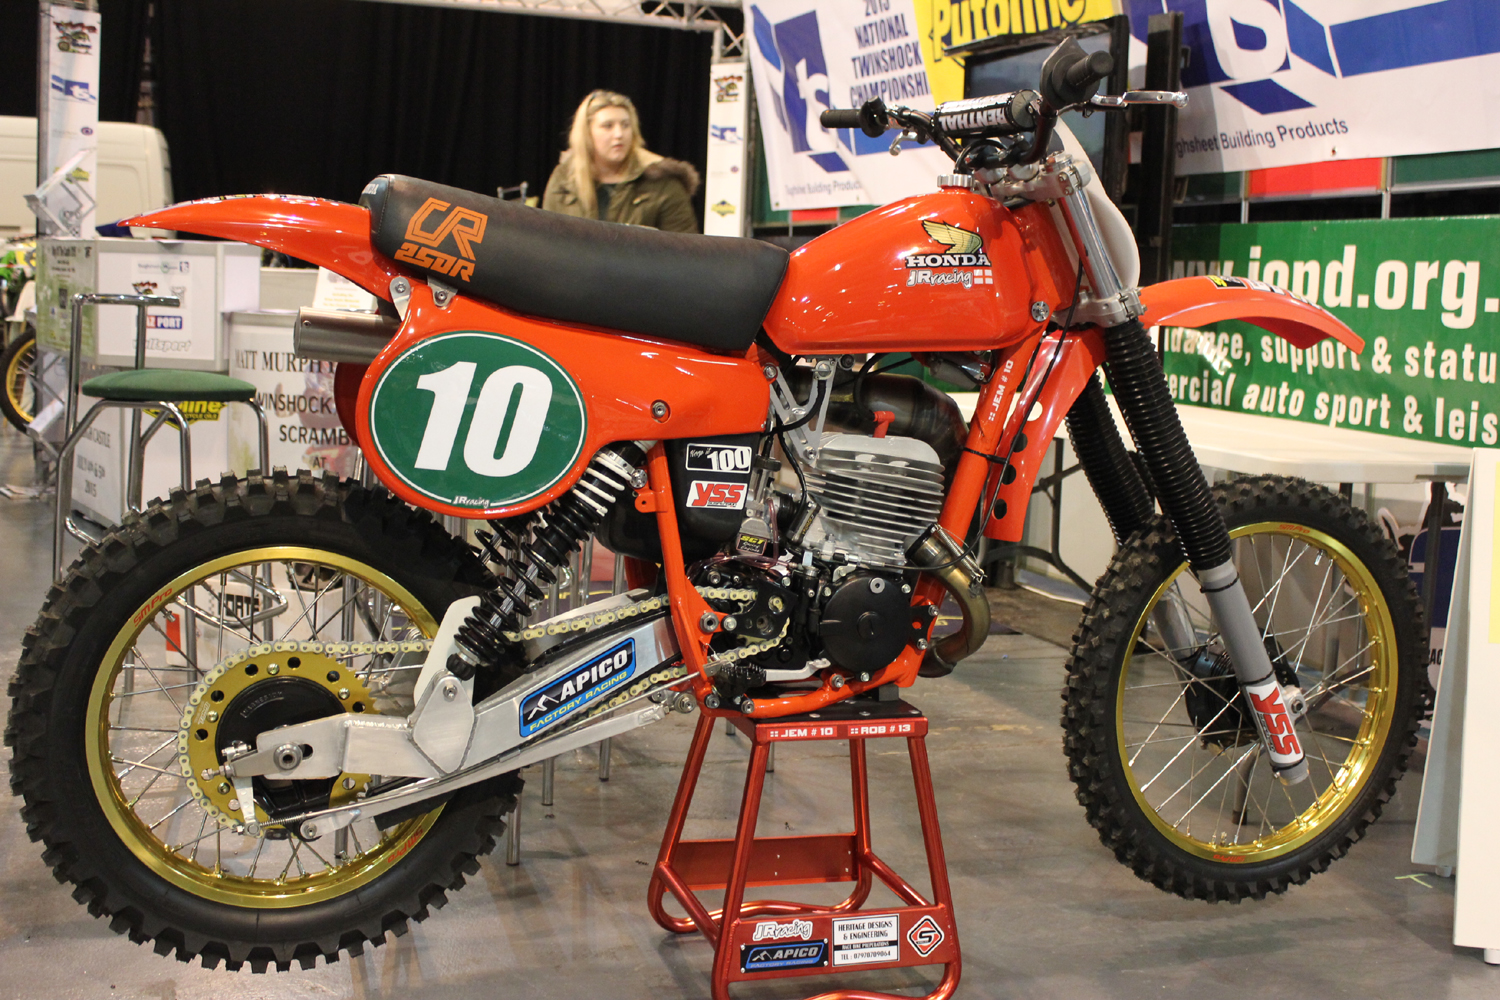 classicdirtbikerider.com-photo by Mr J-2015 Telford classic dirt bike show-HONDA CR250 RED ROCKET